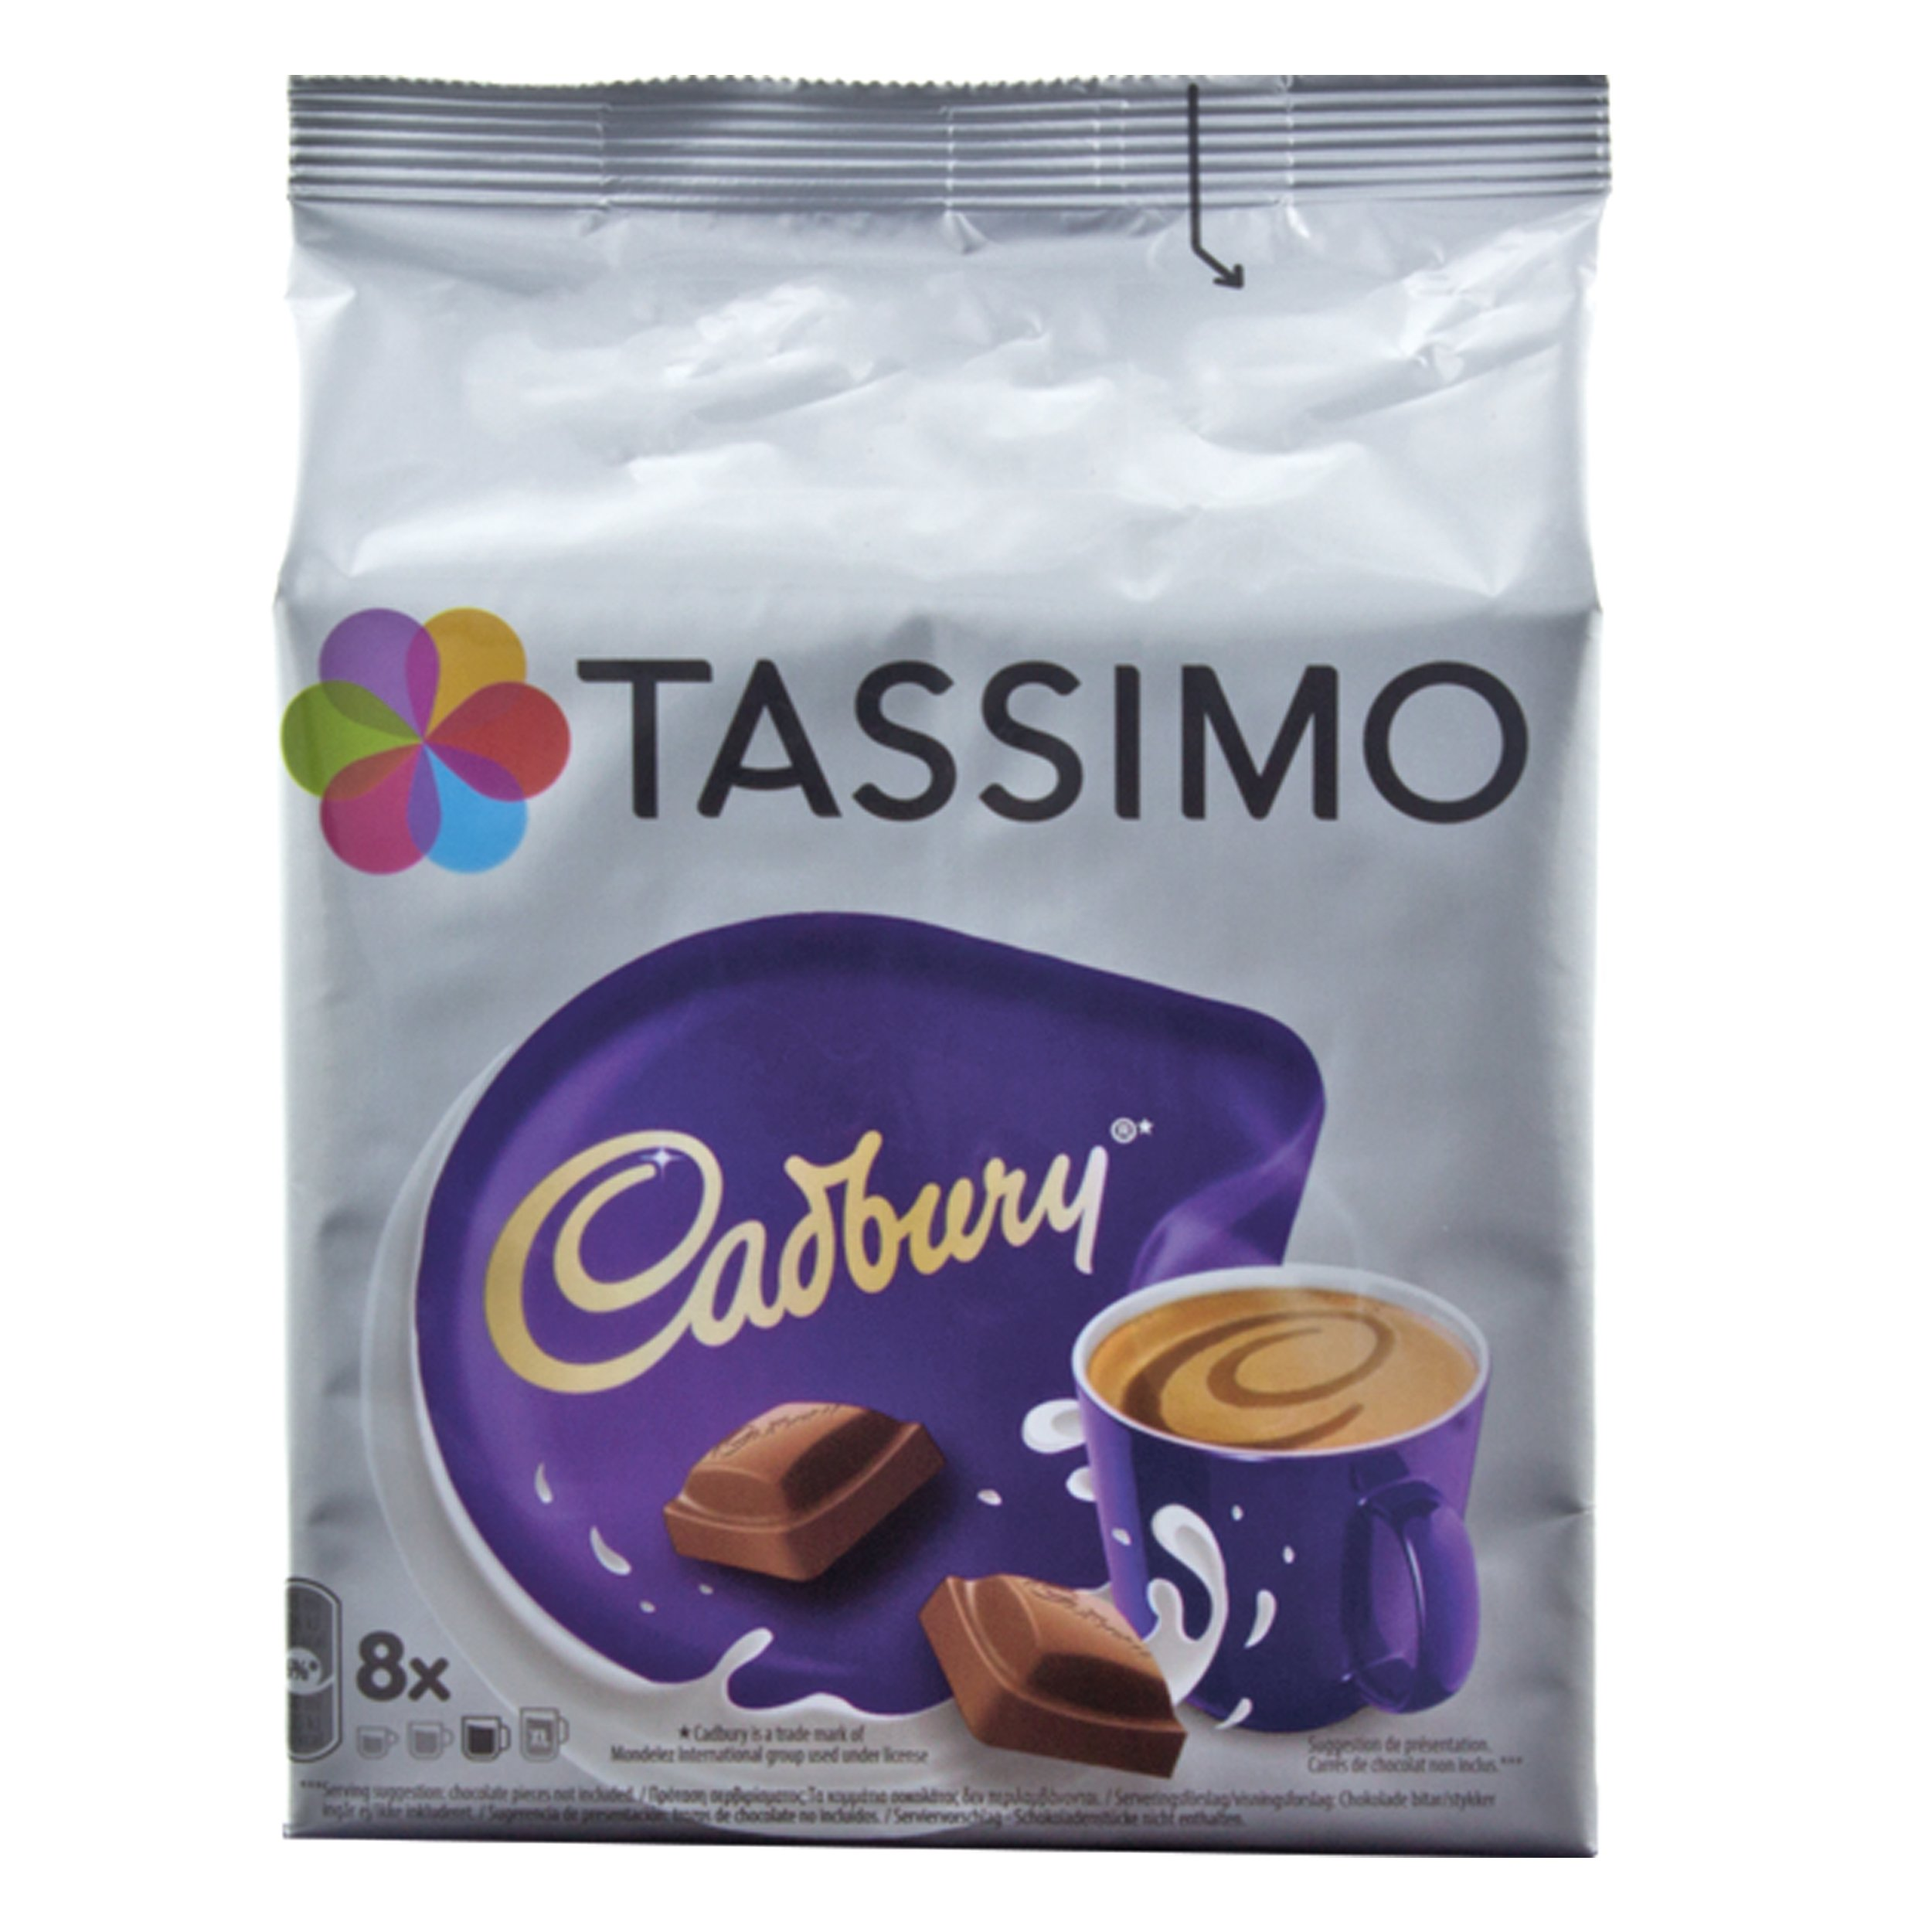 tassimo cadbury hot chocolate instructions